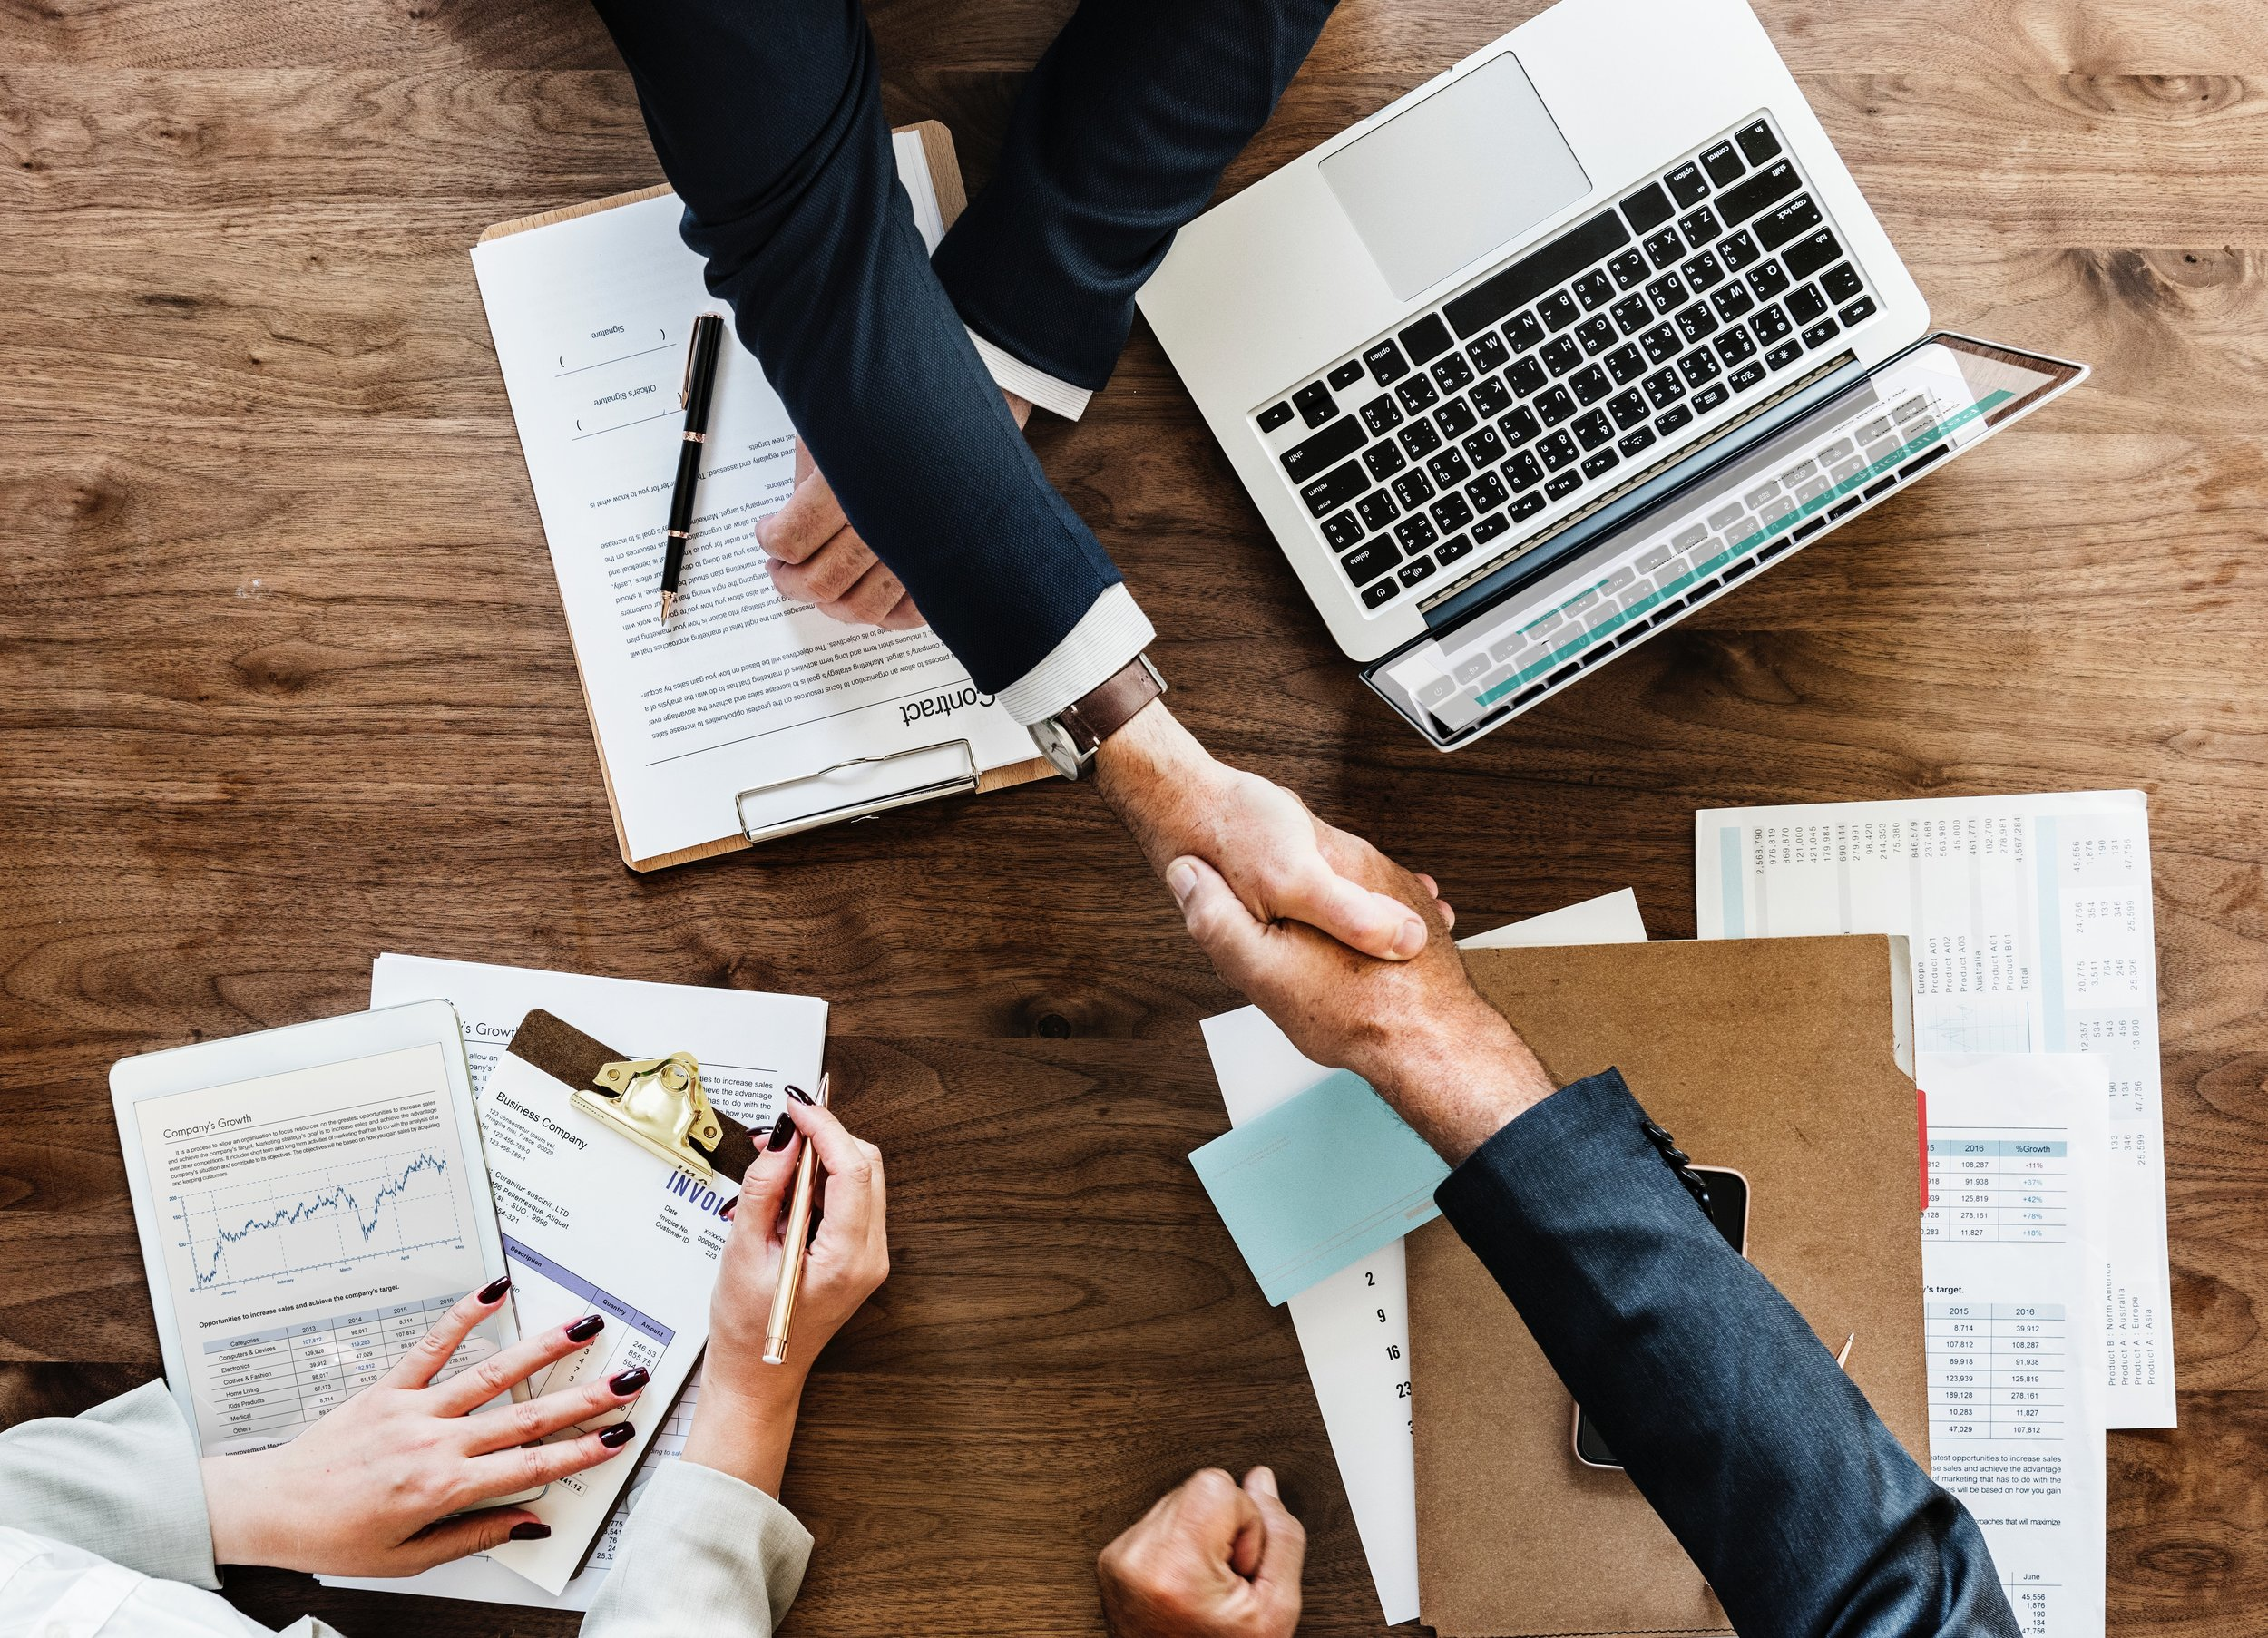 Acol is your trustworthy and experienced partner for result orientated advice and for implementing improvements and changes within youR complex organisational structure - Consultancy